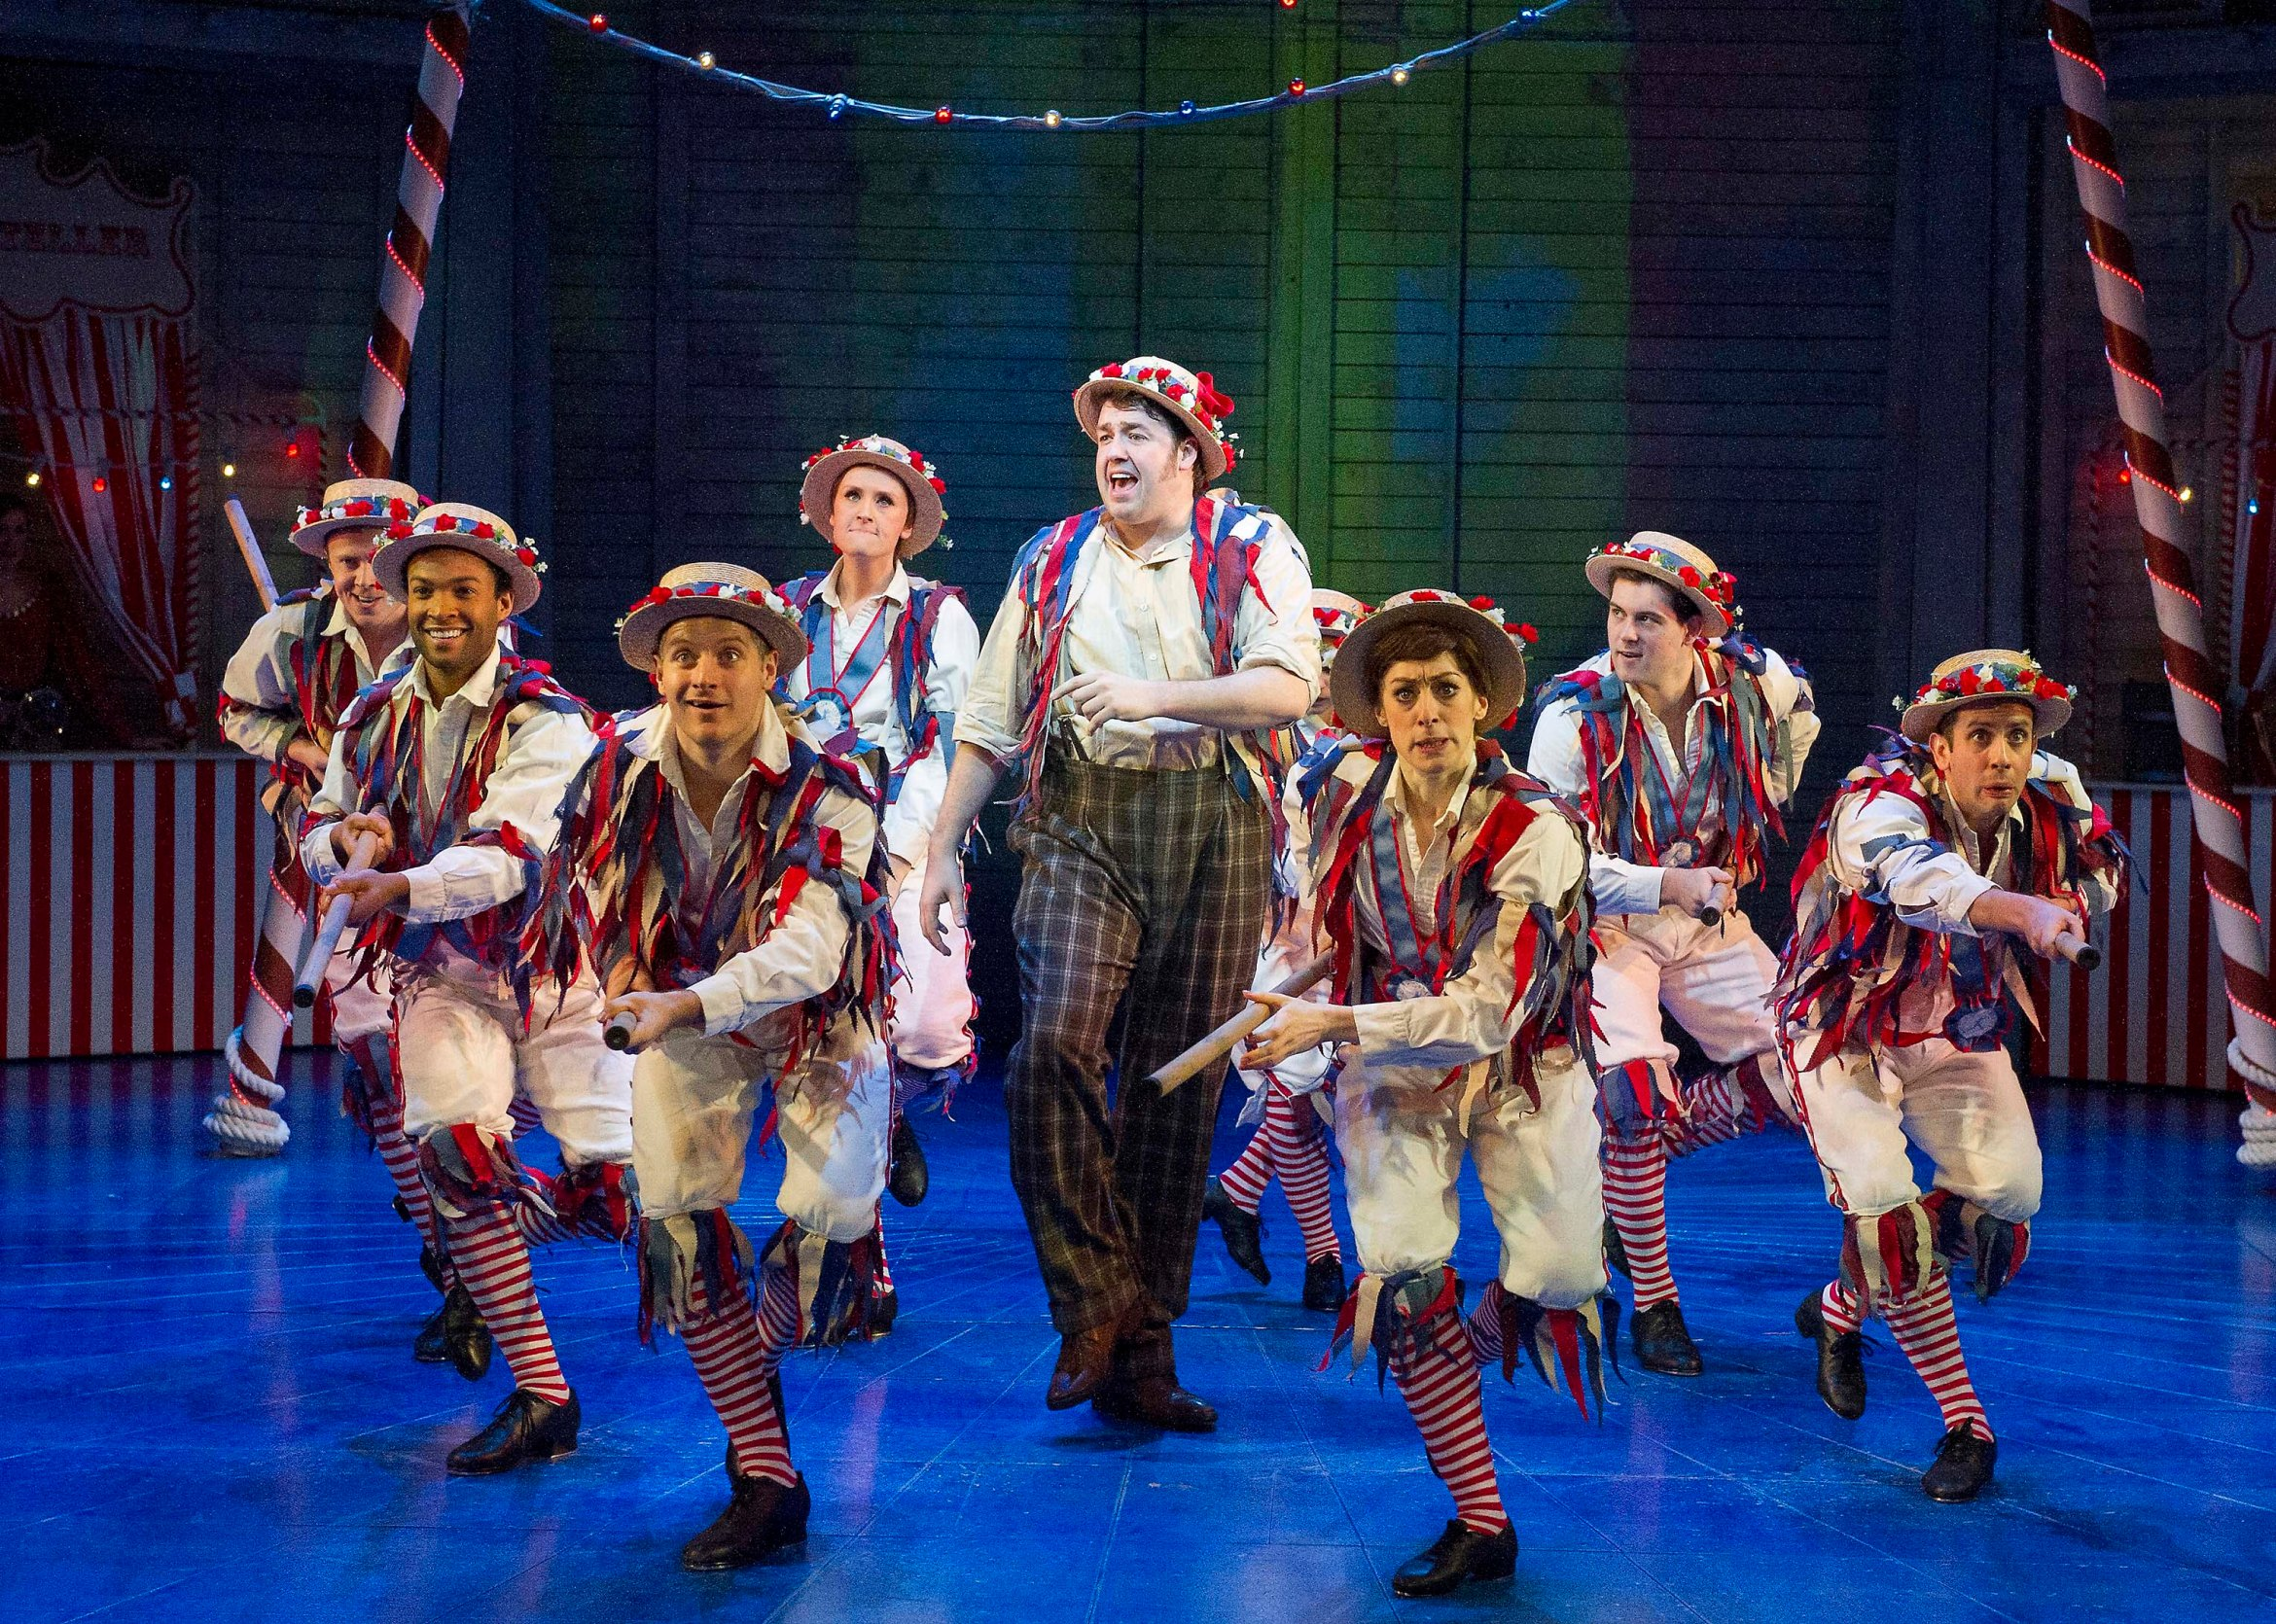 Jason Manford (centre) as Caractacus Potts and the cast of Chitty Chitty Bang Bang. Credit Alastair Muir - Copy.jpg